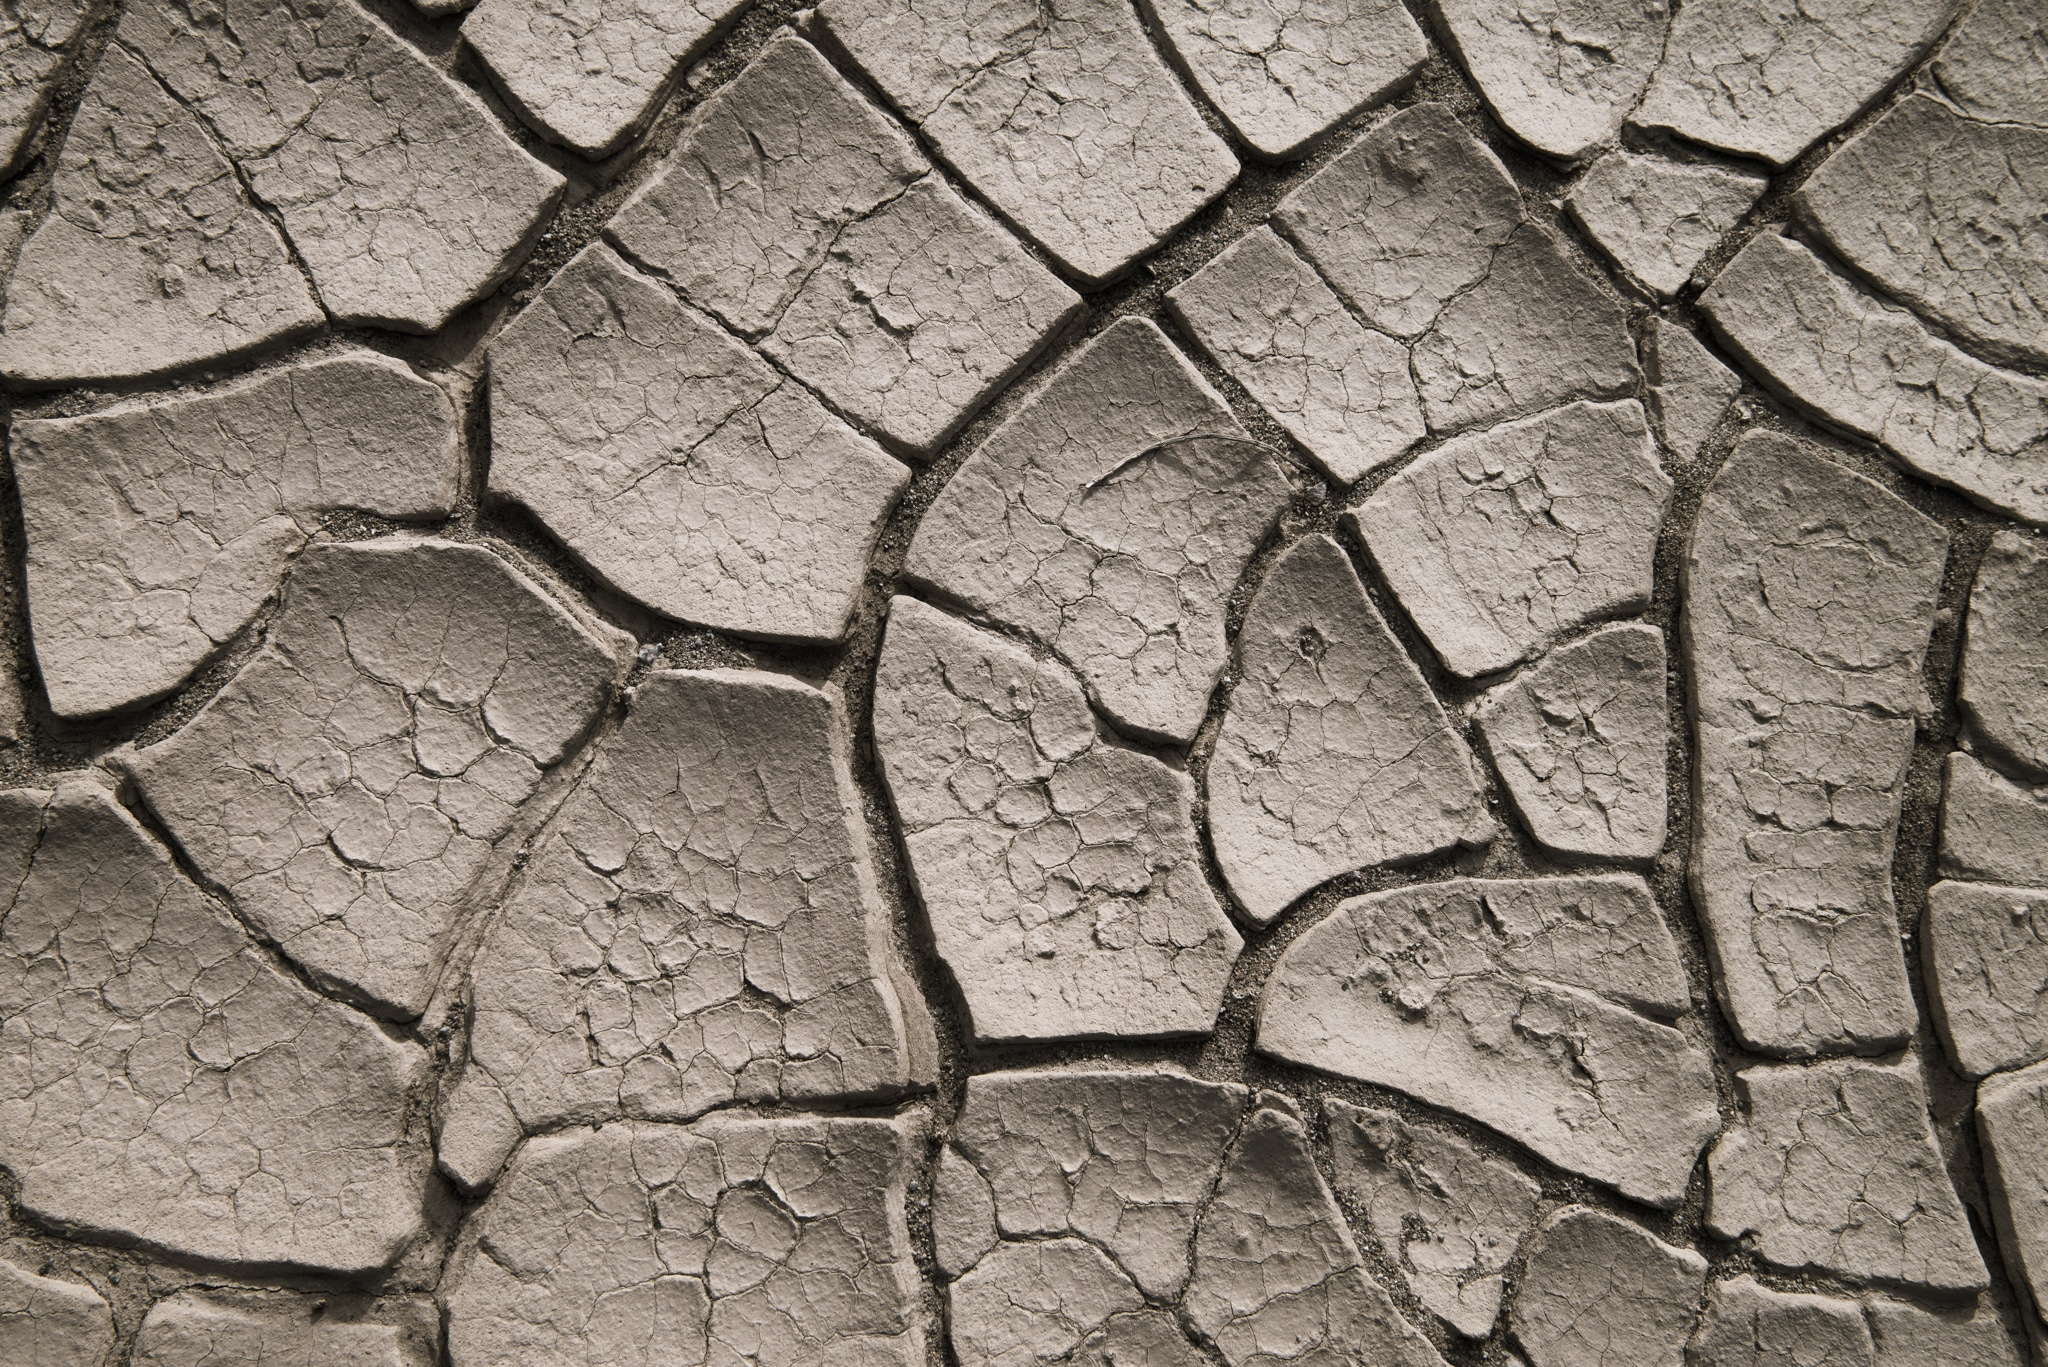 These cracked mudflats are visible along a dirt road that heads west from the airstrip at Stovepipe Wells in Death Valley National Park, California.